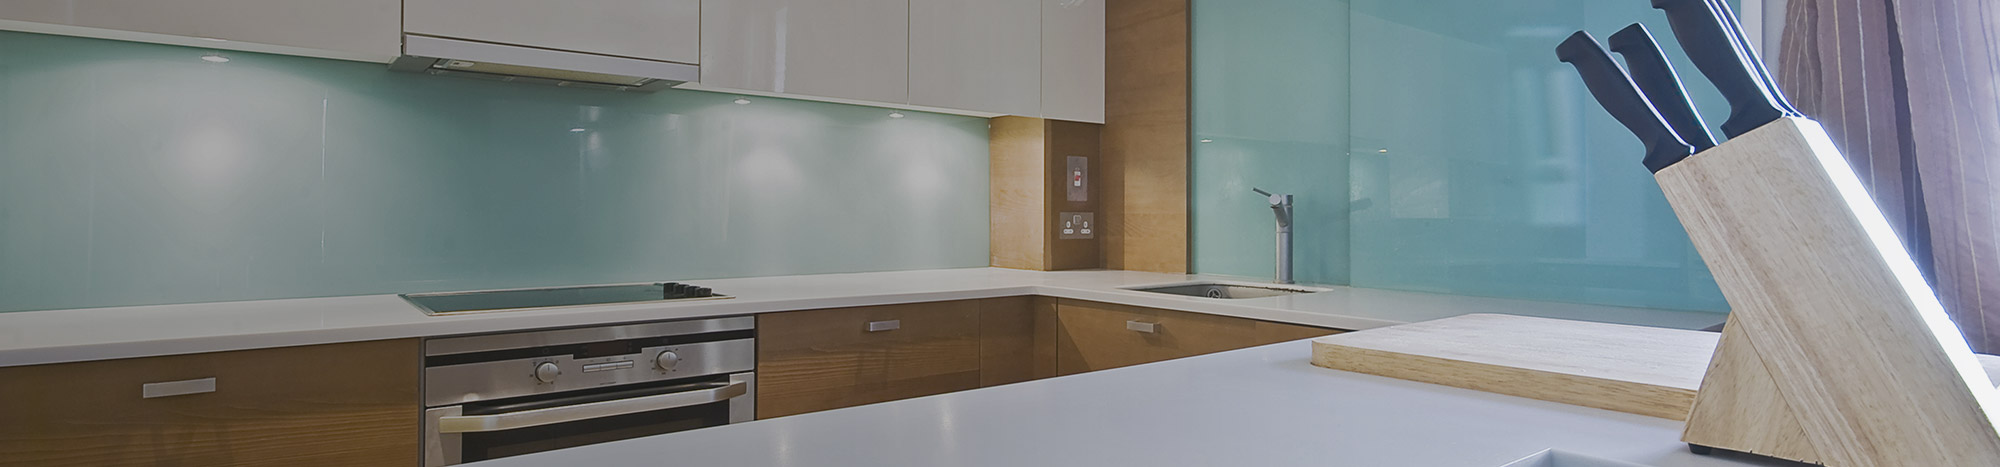 Glass Splash backs Watford | Hemel Hempsted | St Albans ...